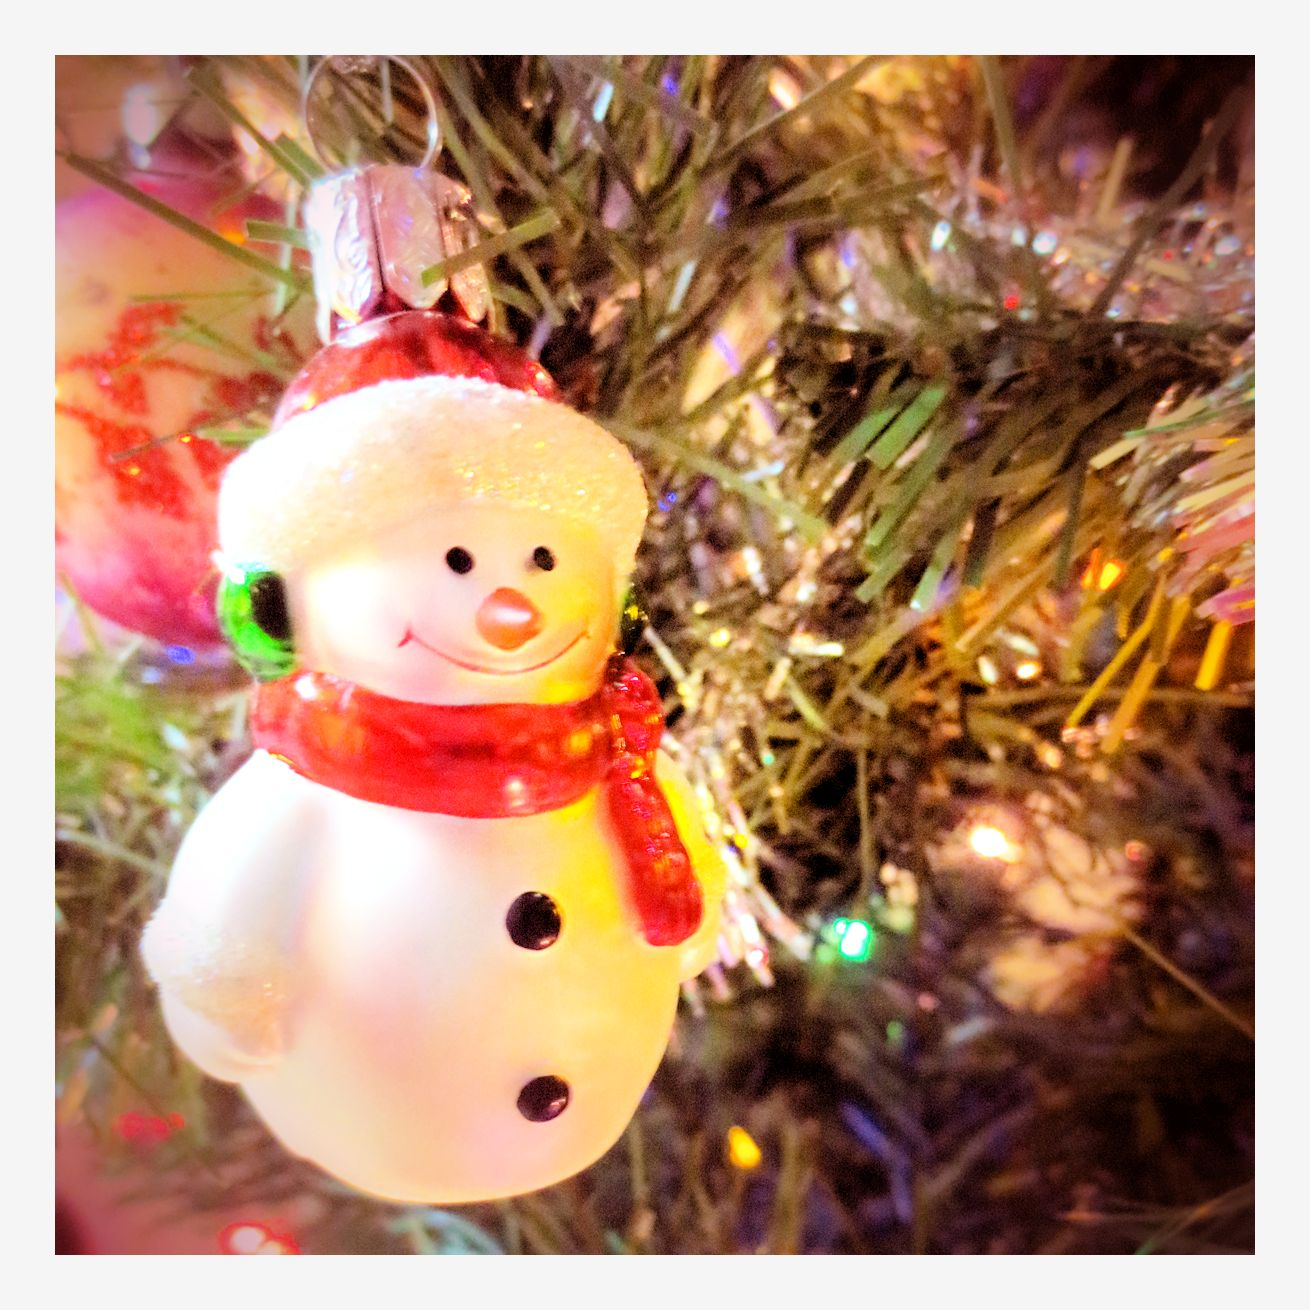 4. Frosty the Snowman